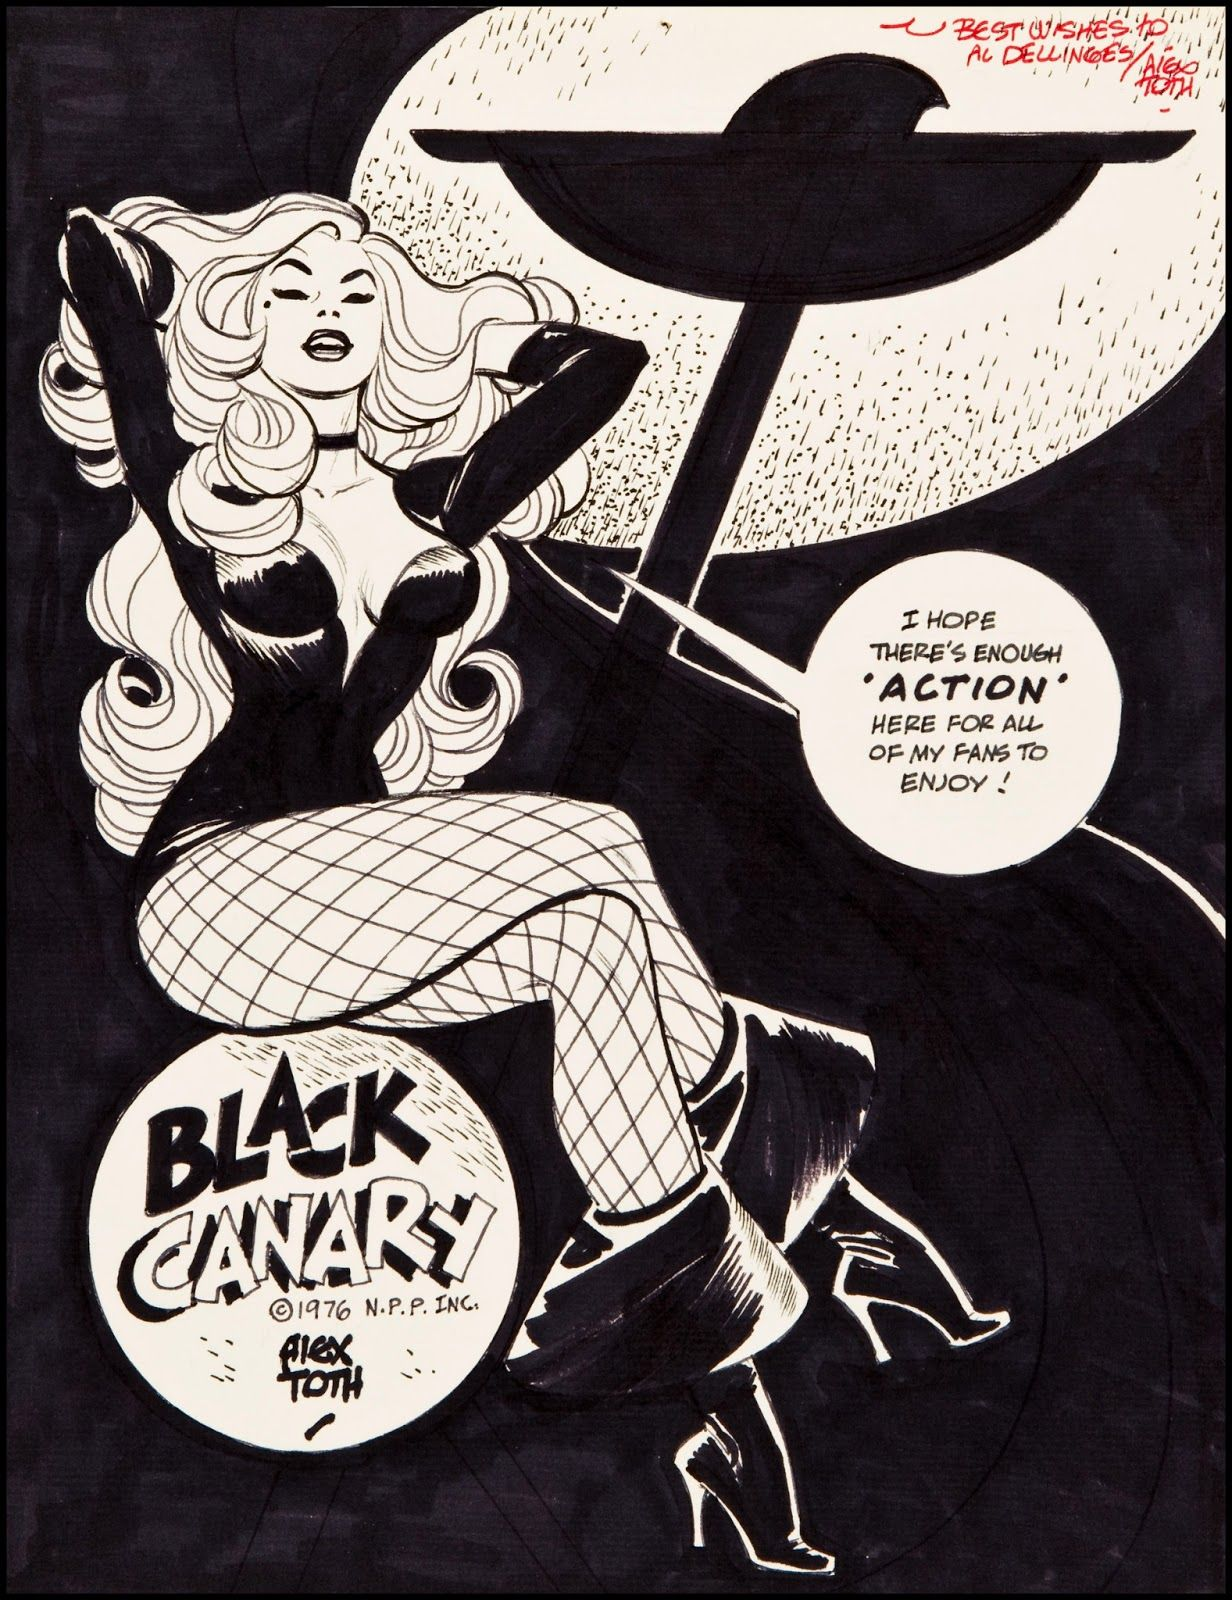 Alex Toth: The Black Canary (1976)